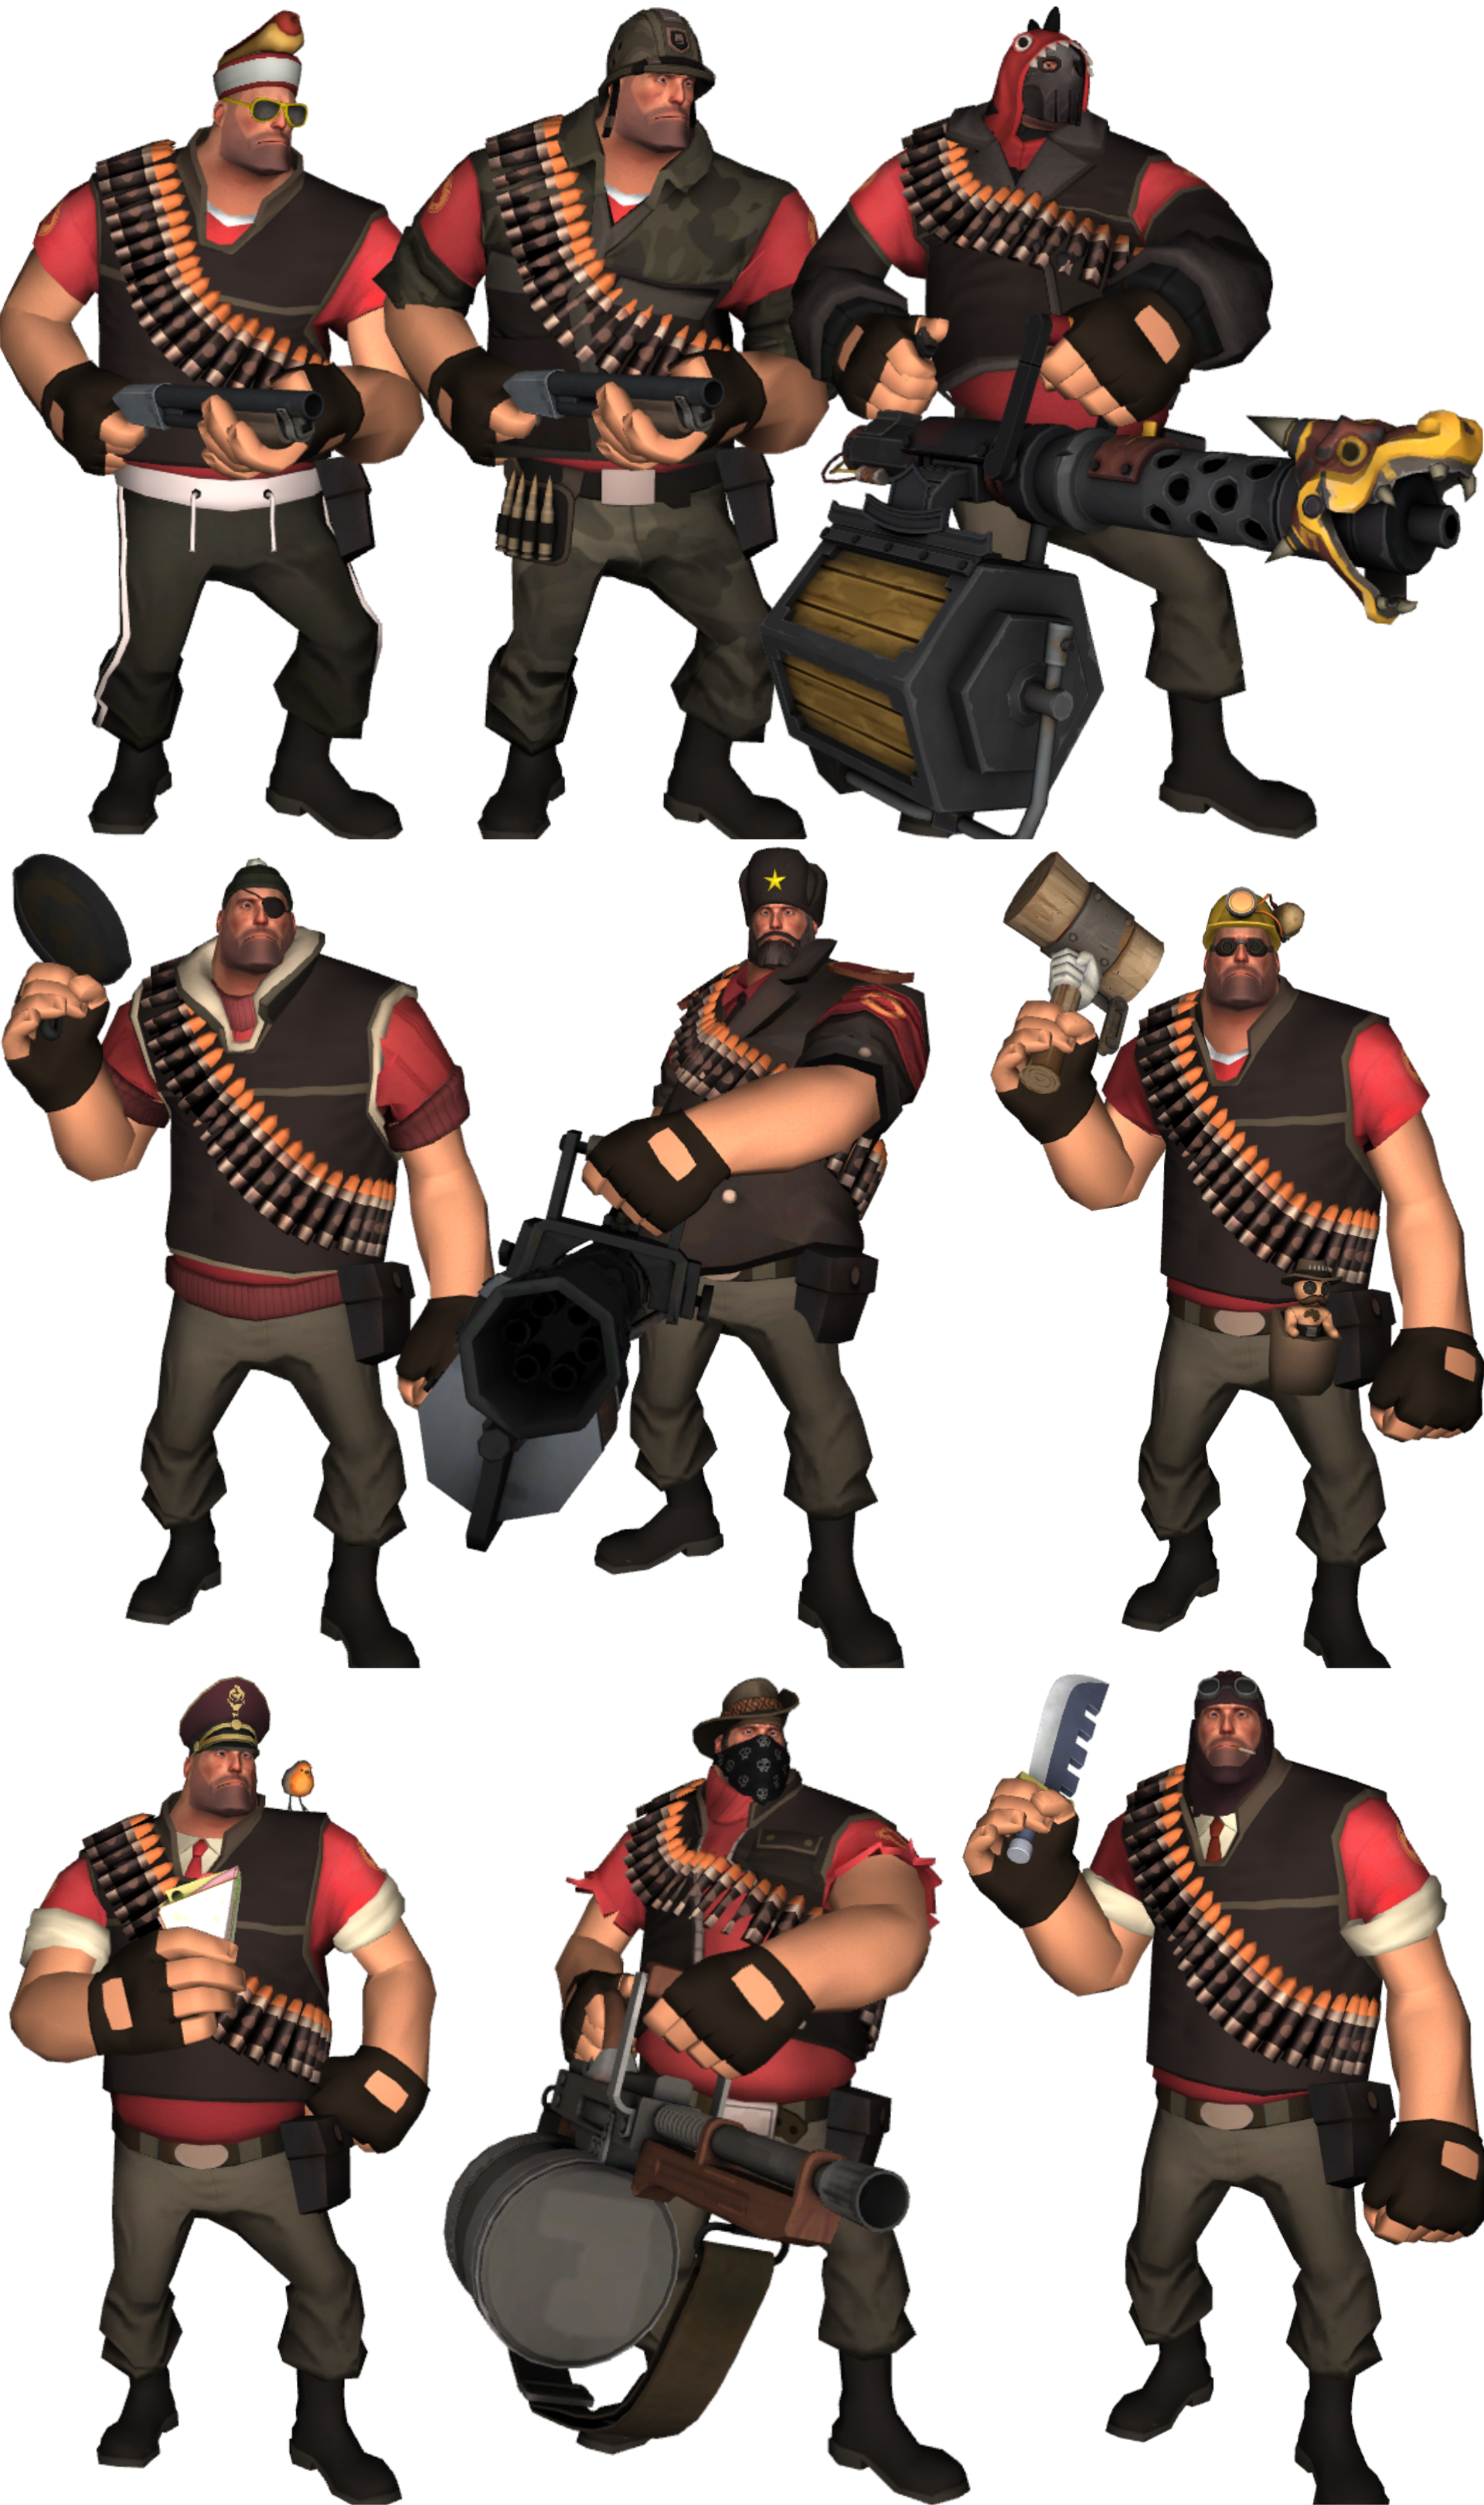 Heavy Fortress 2 Games Teamfortress2 Steam Tf2 Steamnewrelease Gaming Valve Team Fortress 2 Heavy Team Fortress 2 Fortress 2